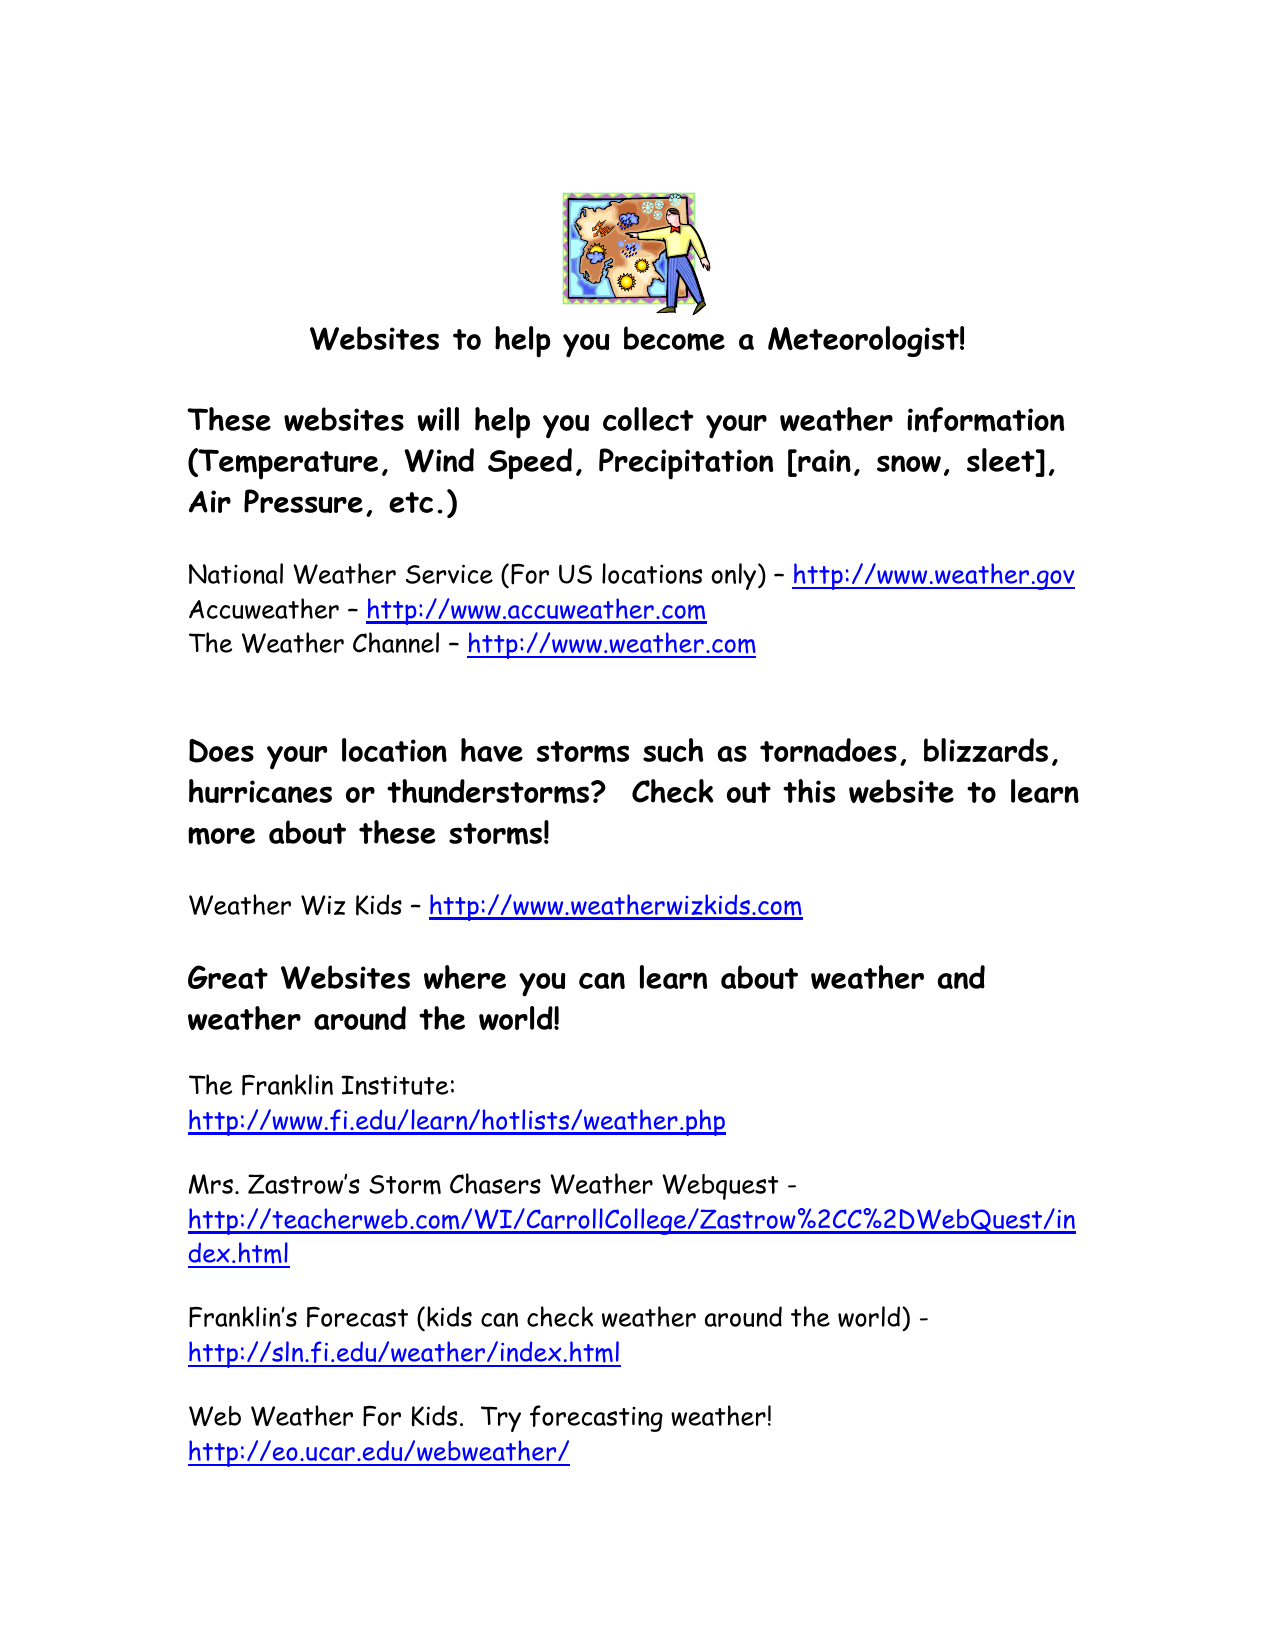 Websites for Teaching Weather: